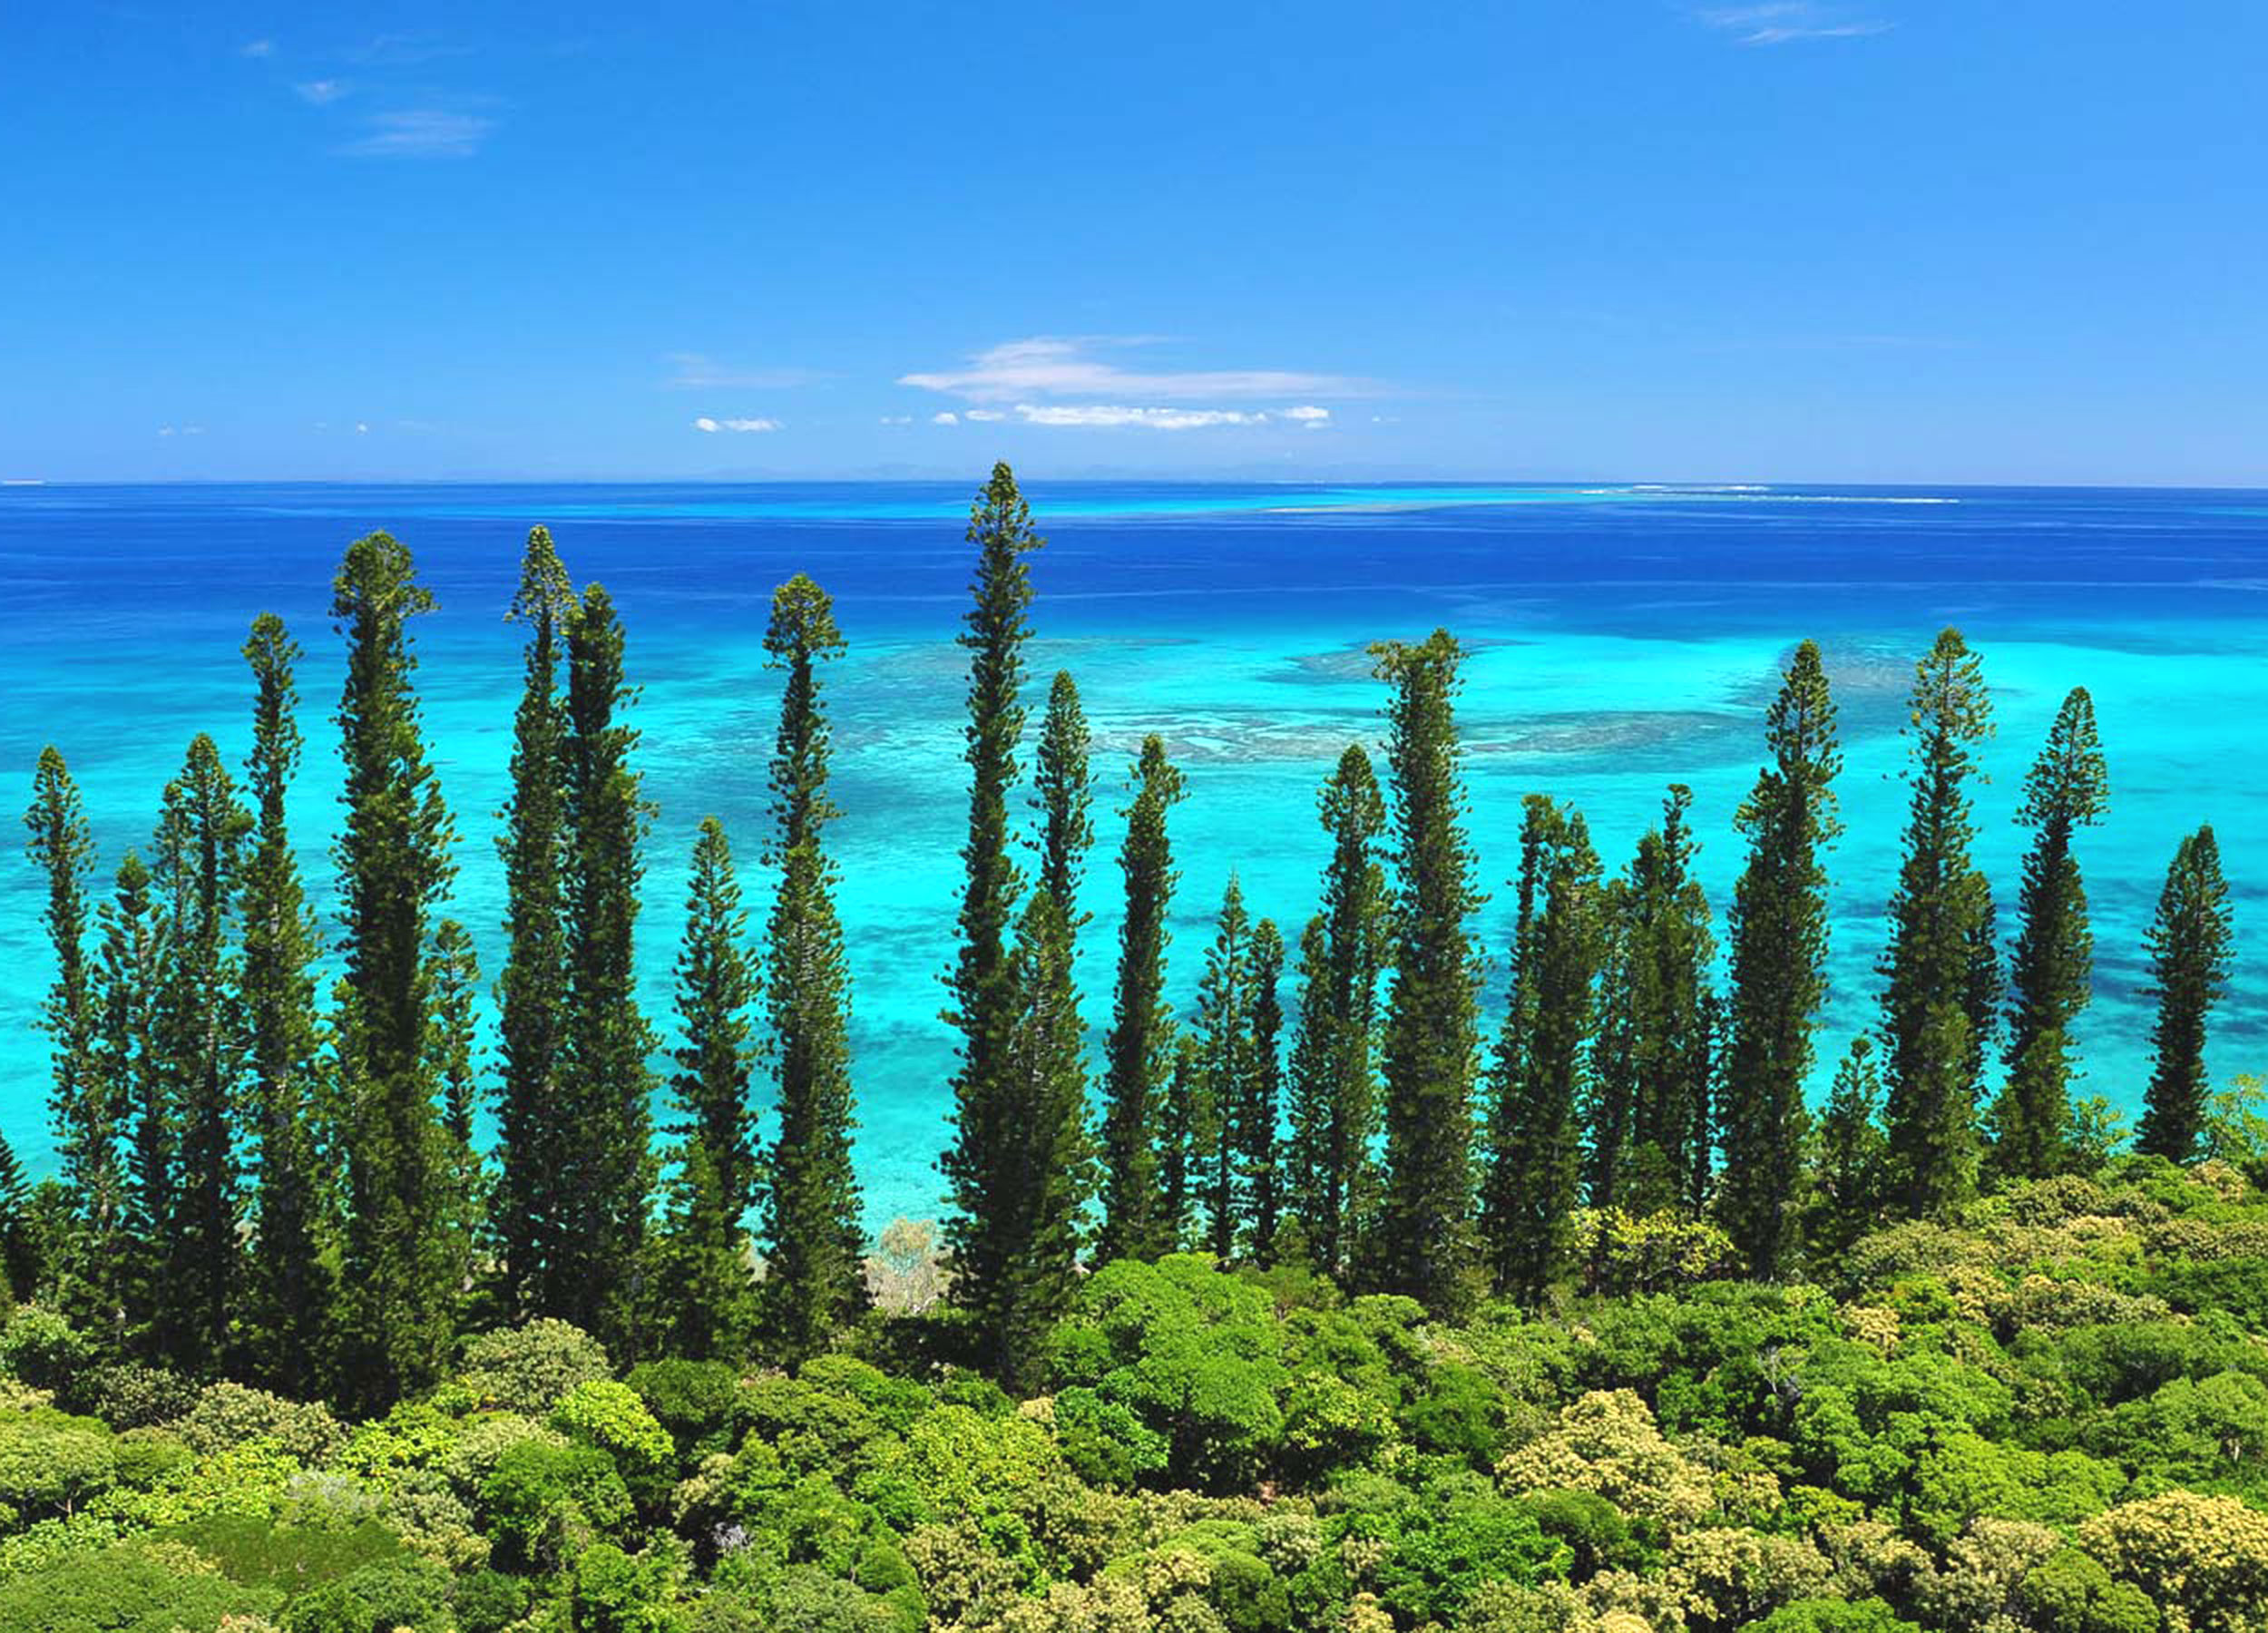 Ocean view from the Îsle of Pines in New Caledonia.